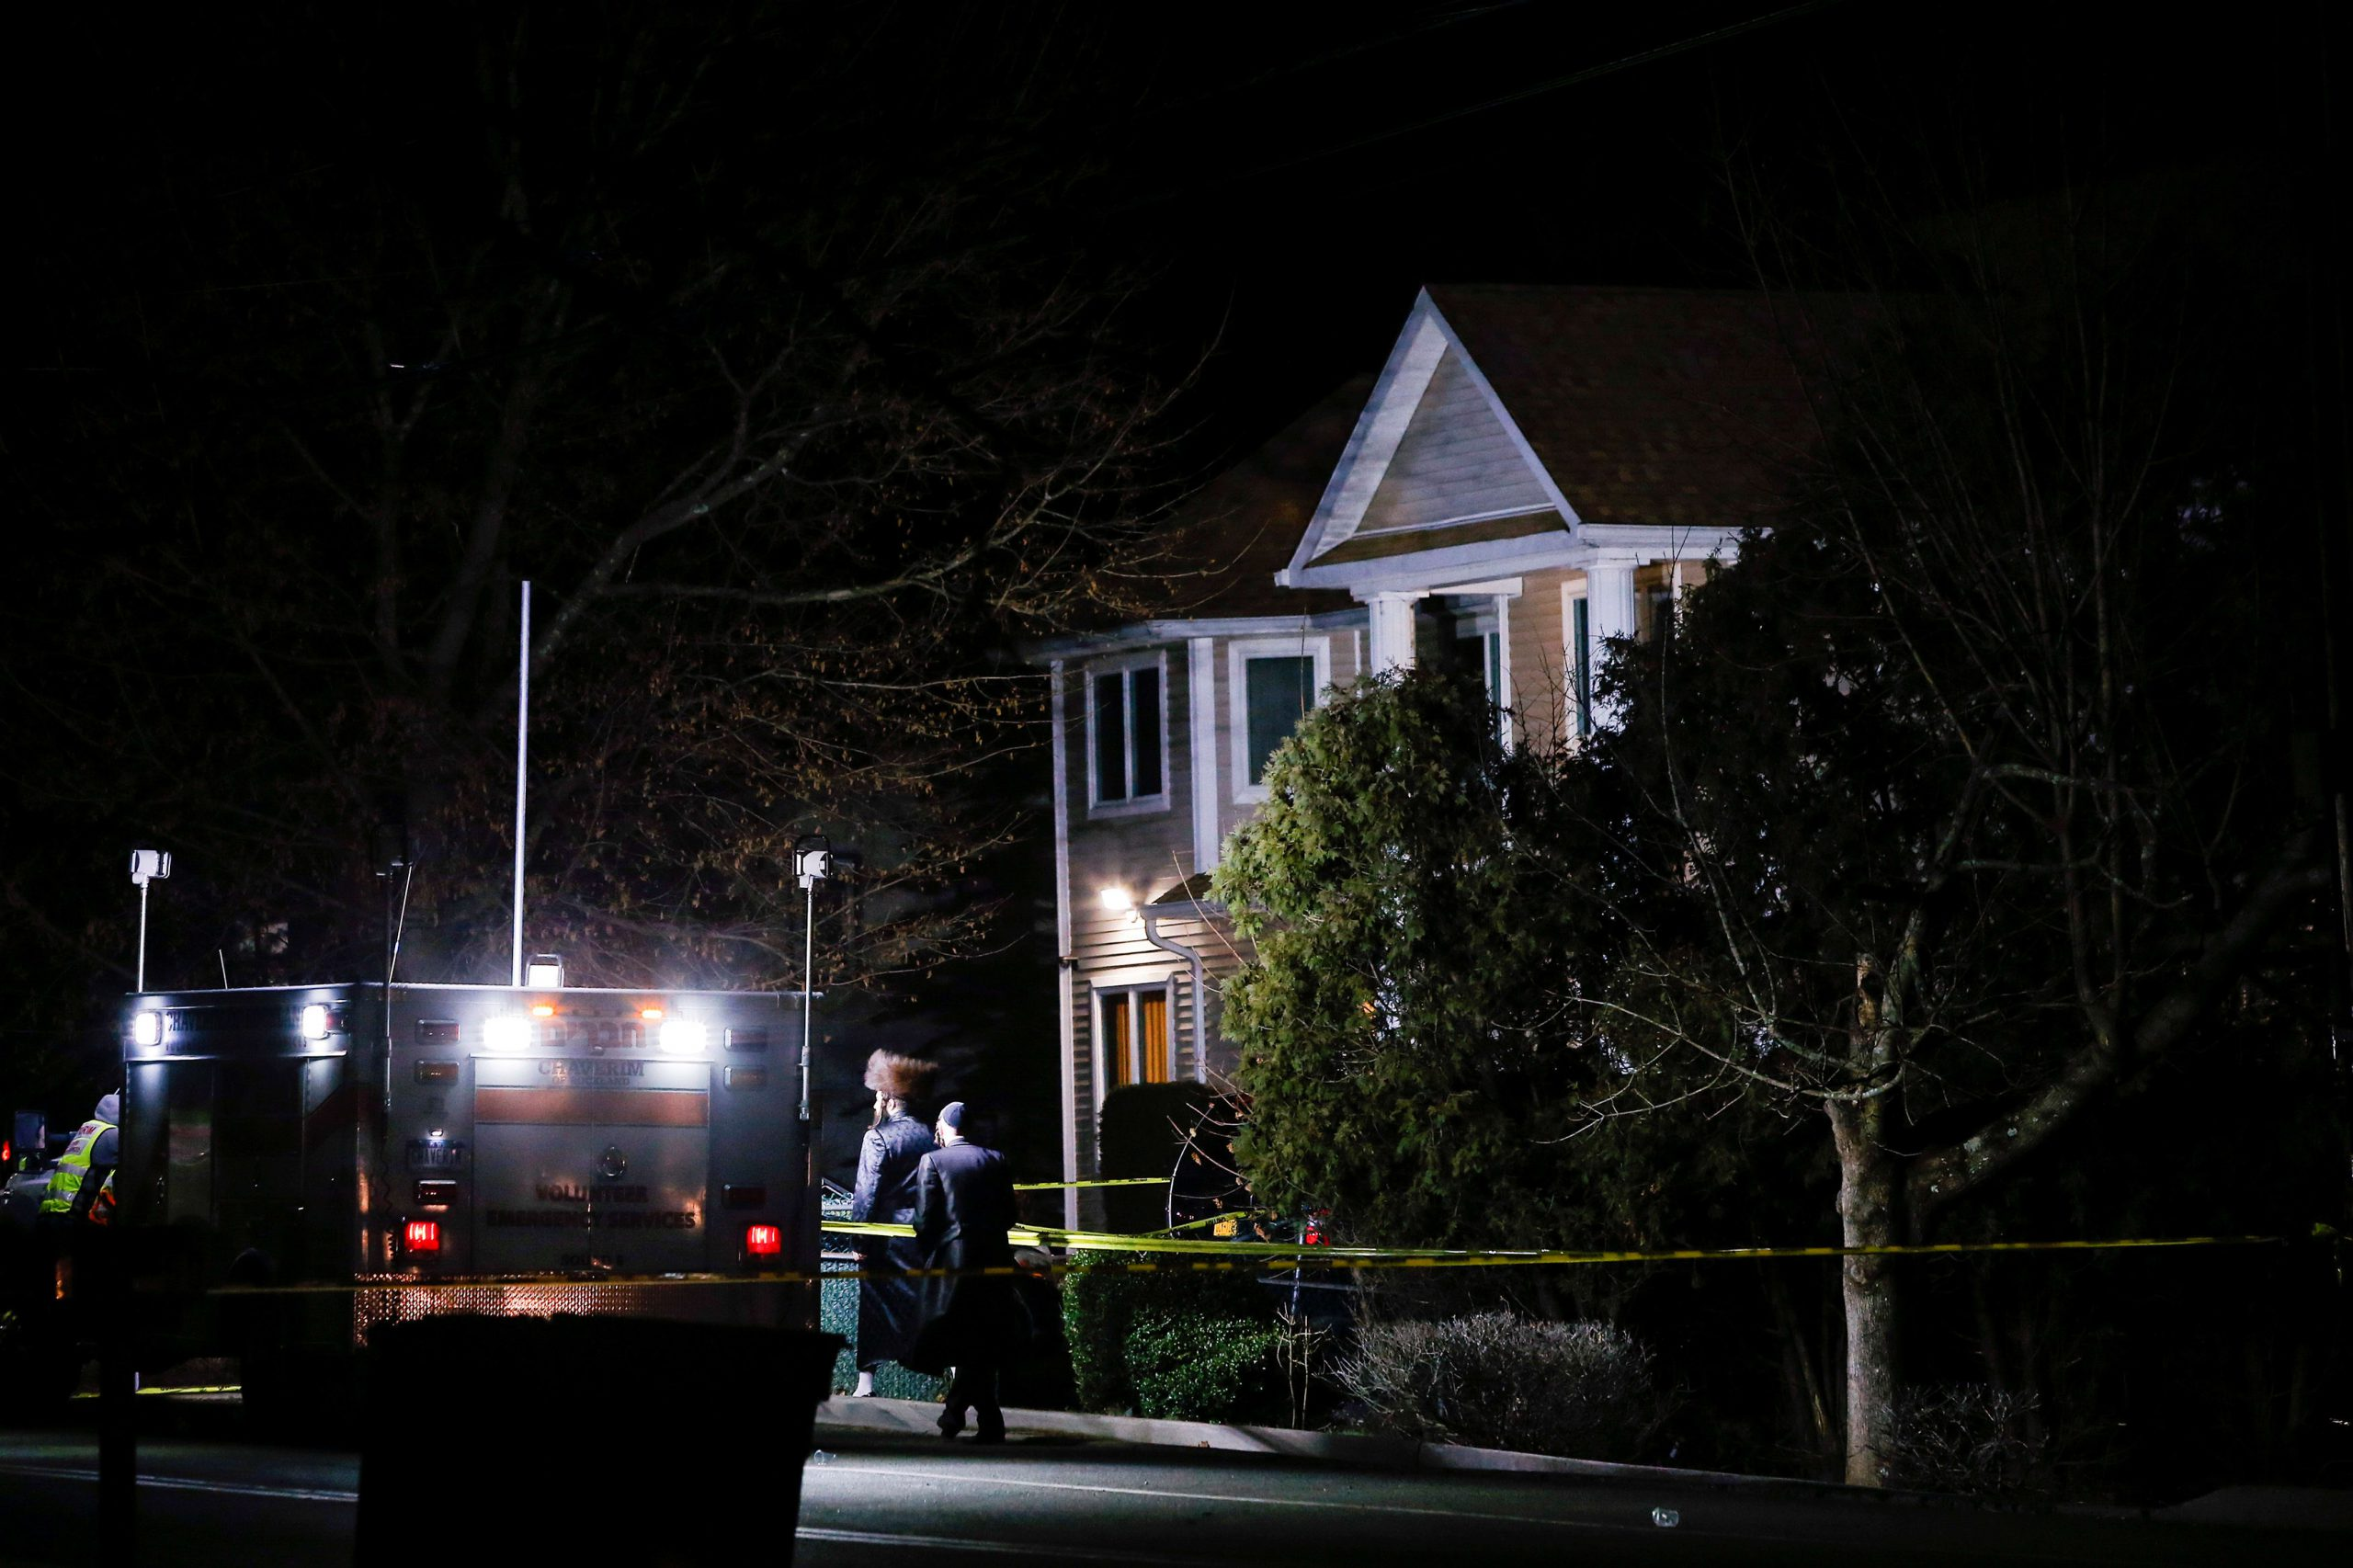 Attacker stabs five at rabbi's home in New York